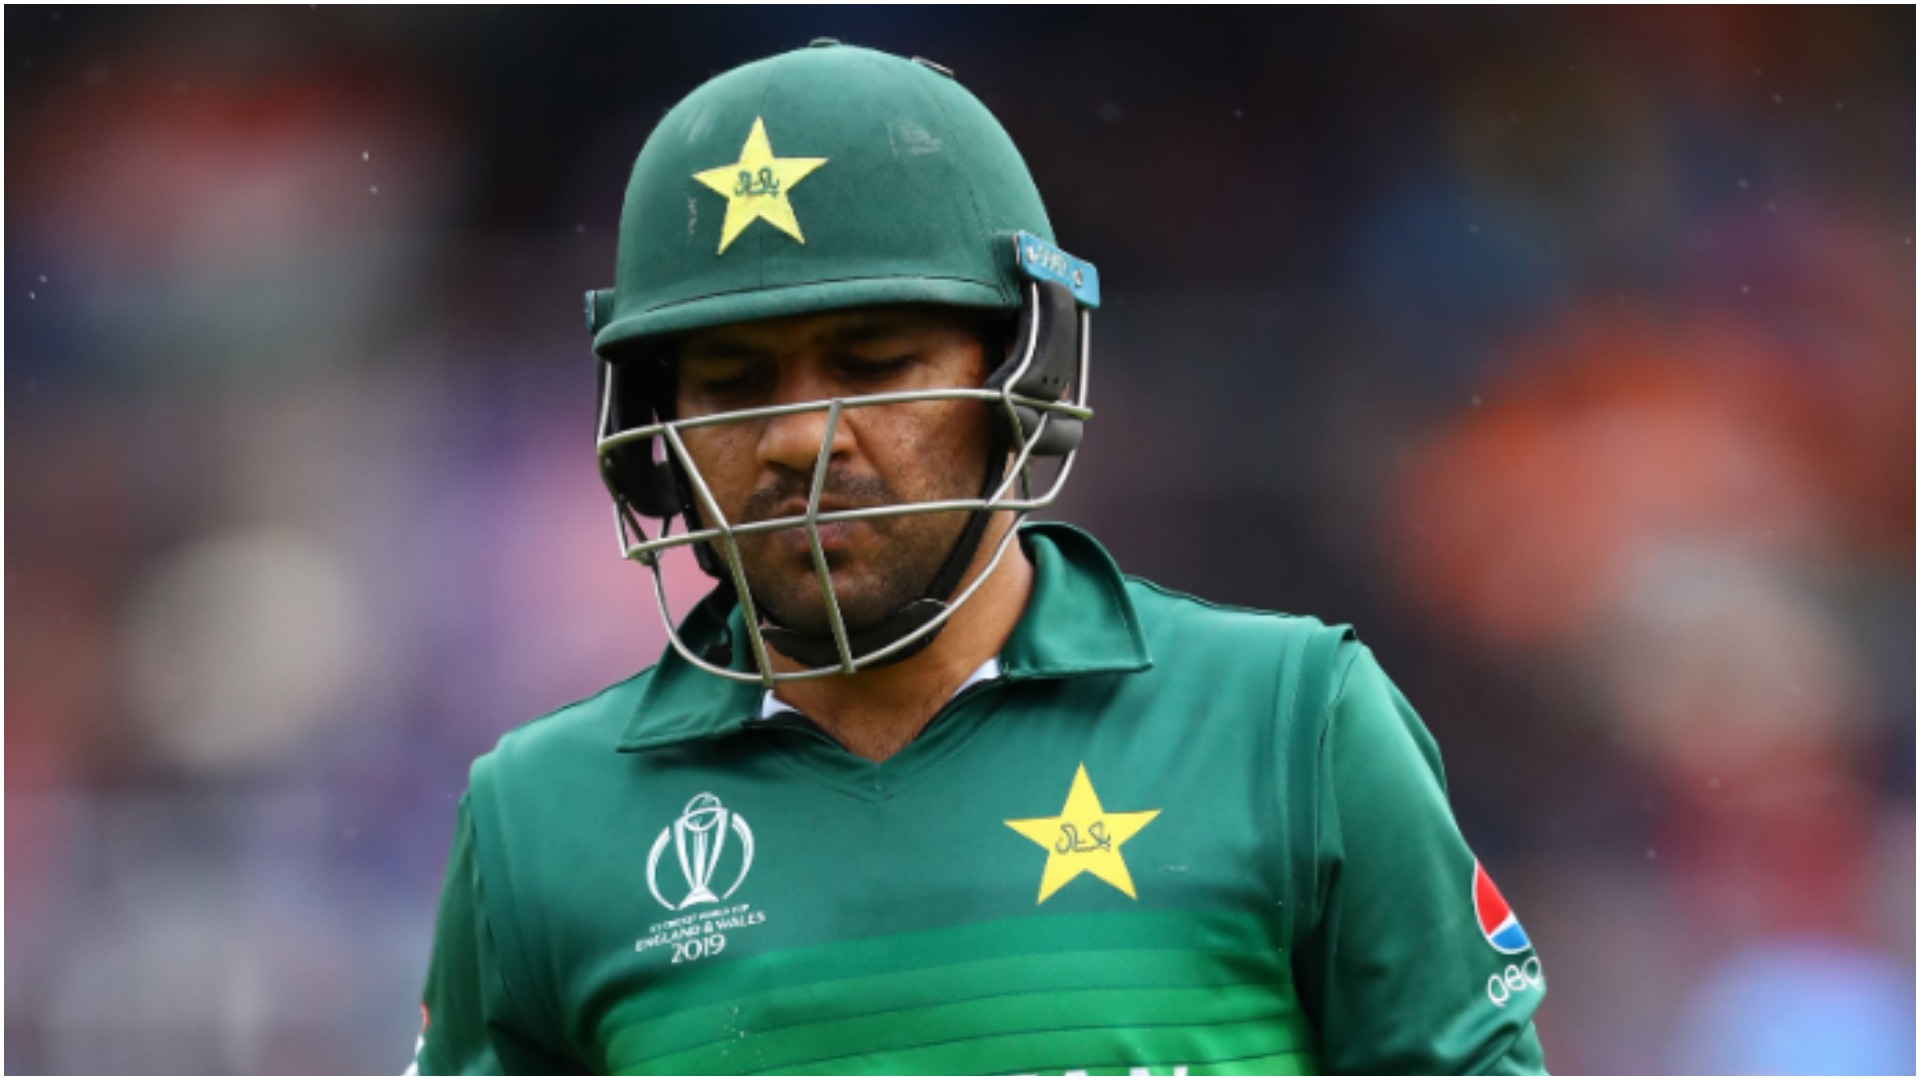 Pakistan have still won just once at the 2019 Cricket World Cup, but Sarfraz Ahmed is not ready to throw in the towel just yet.